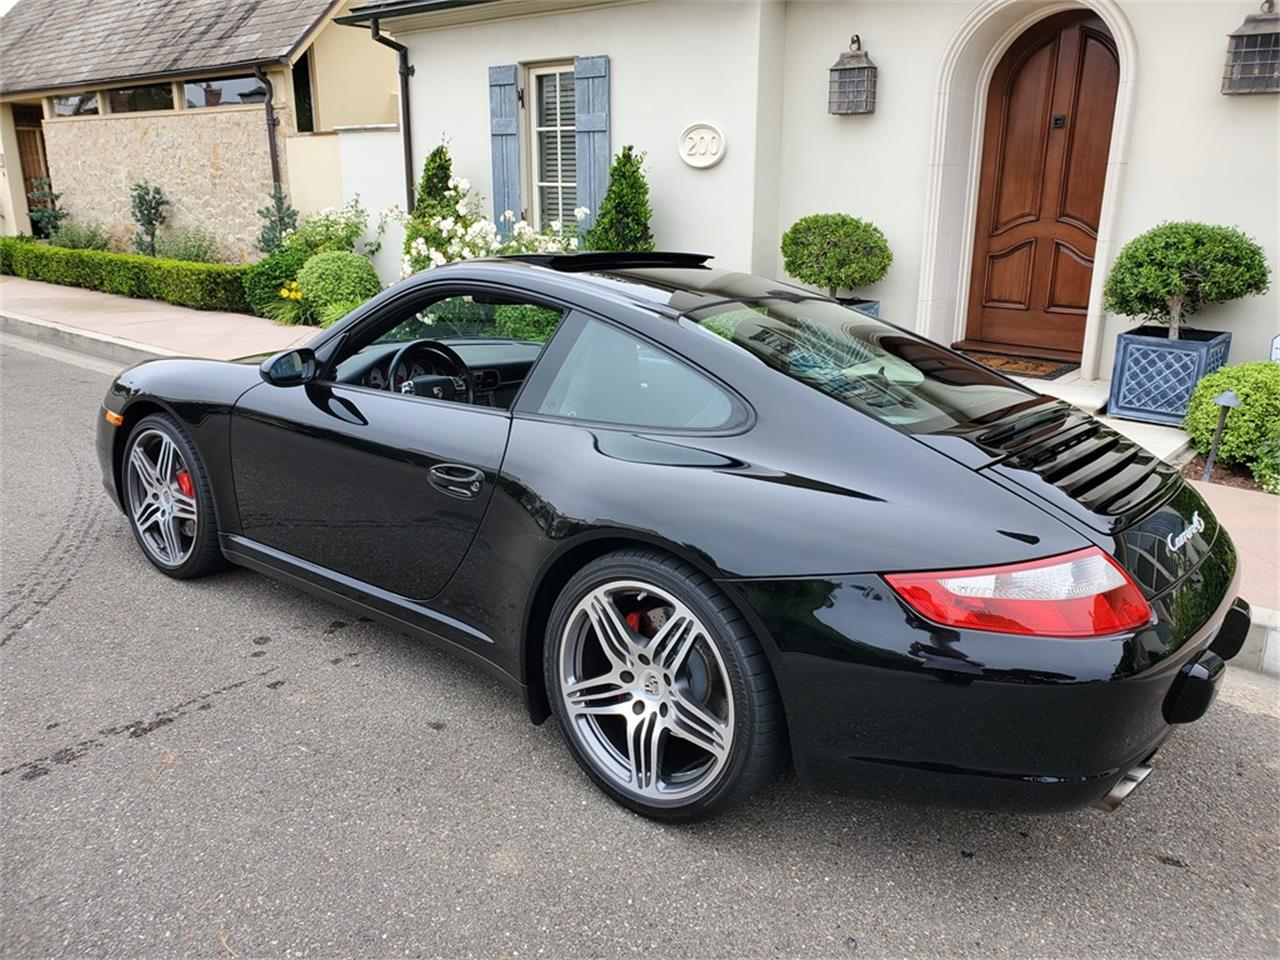 Large Picture of 2007 911 Carrera 4S - $29,990.00 Offered by Star European Inc. - QT04